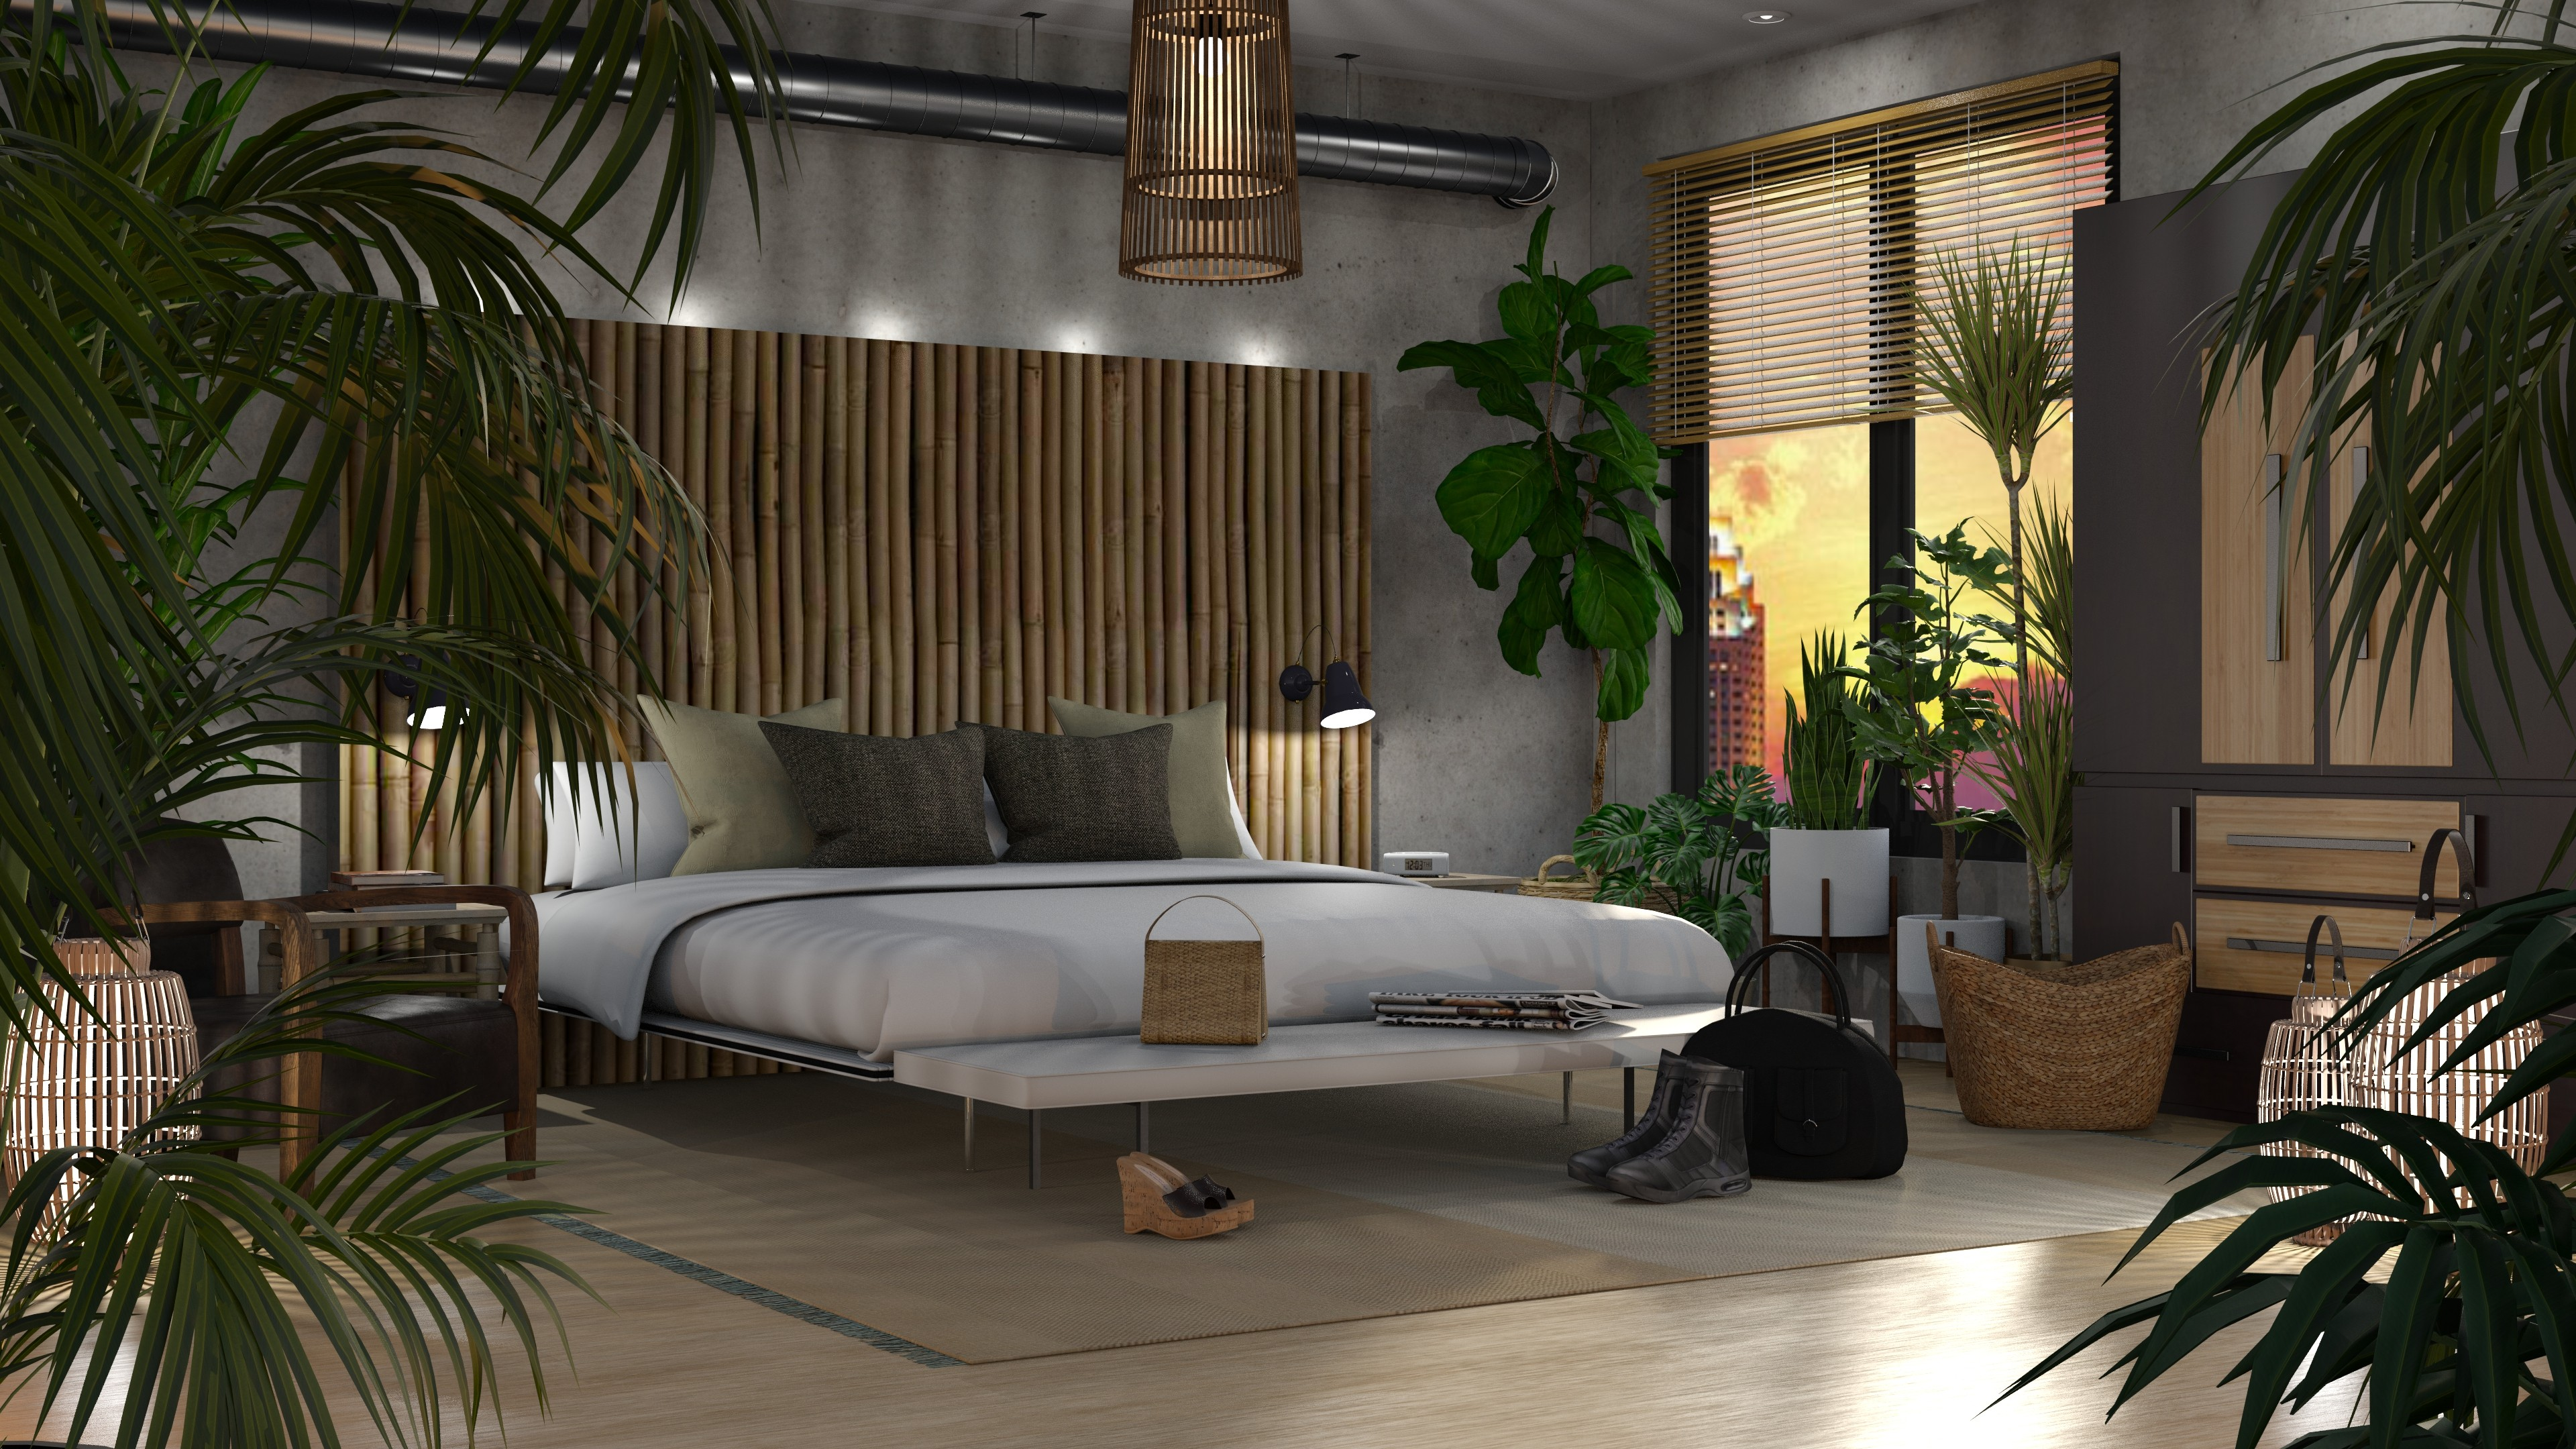 Bedroom Jungle Modern Bedroom Wallpapers Stylish Trends For Your Family